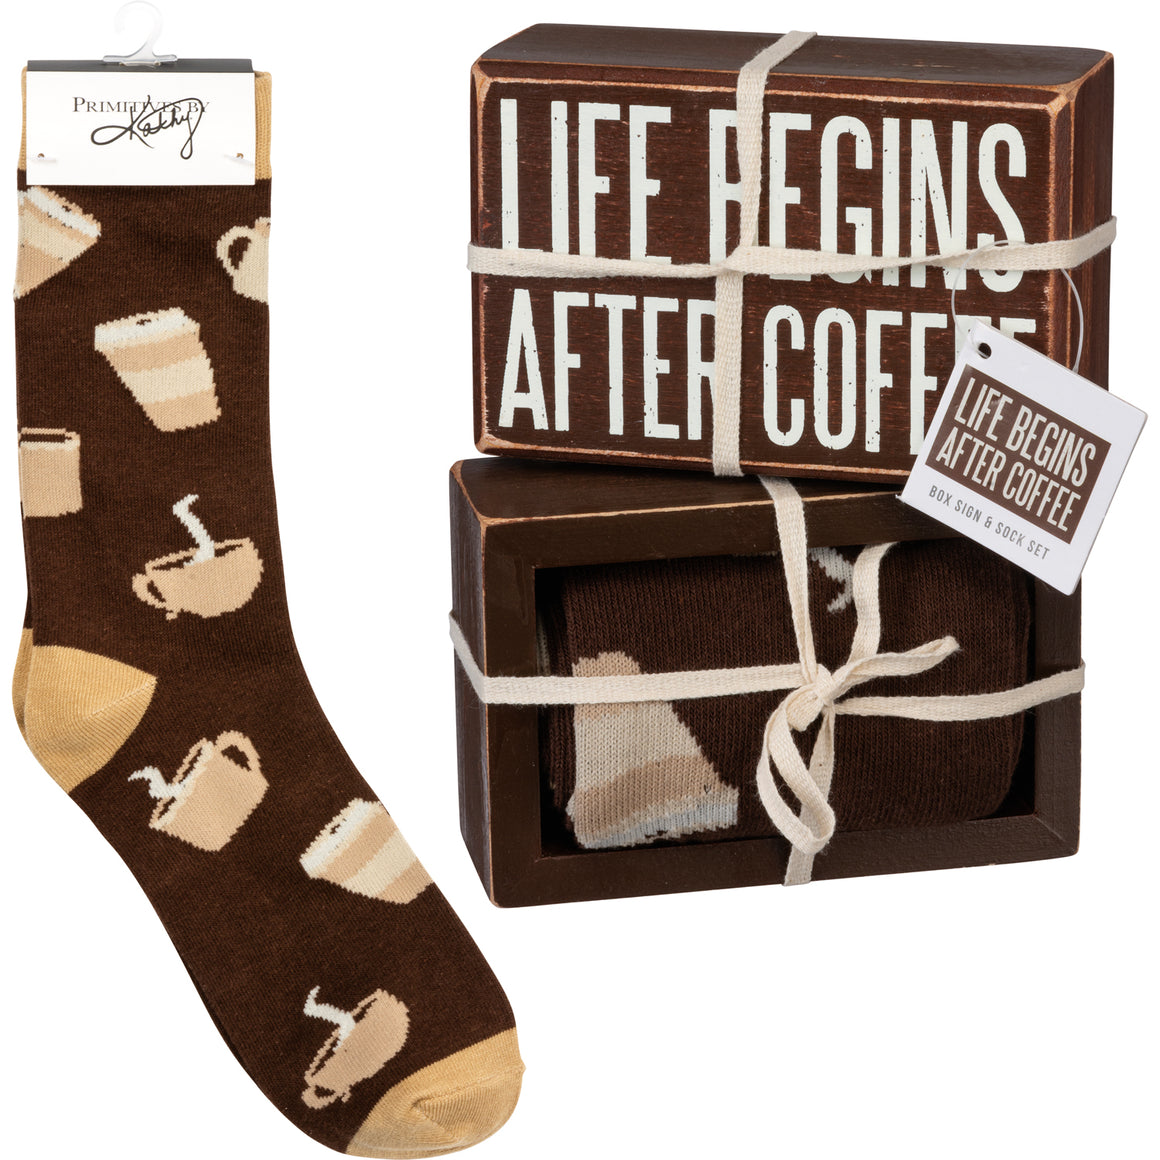 Life Begins After Coffee Socks & Box Sign Gift Set